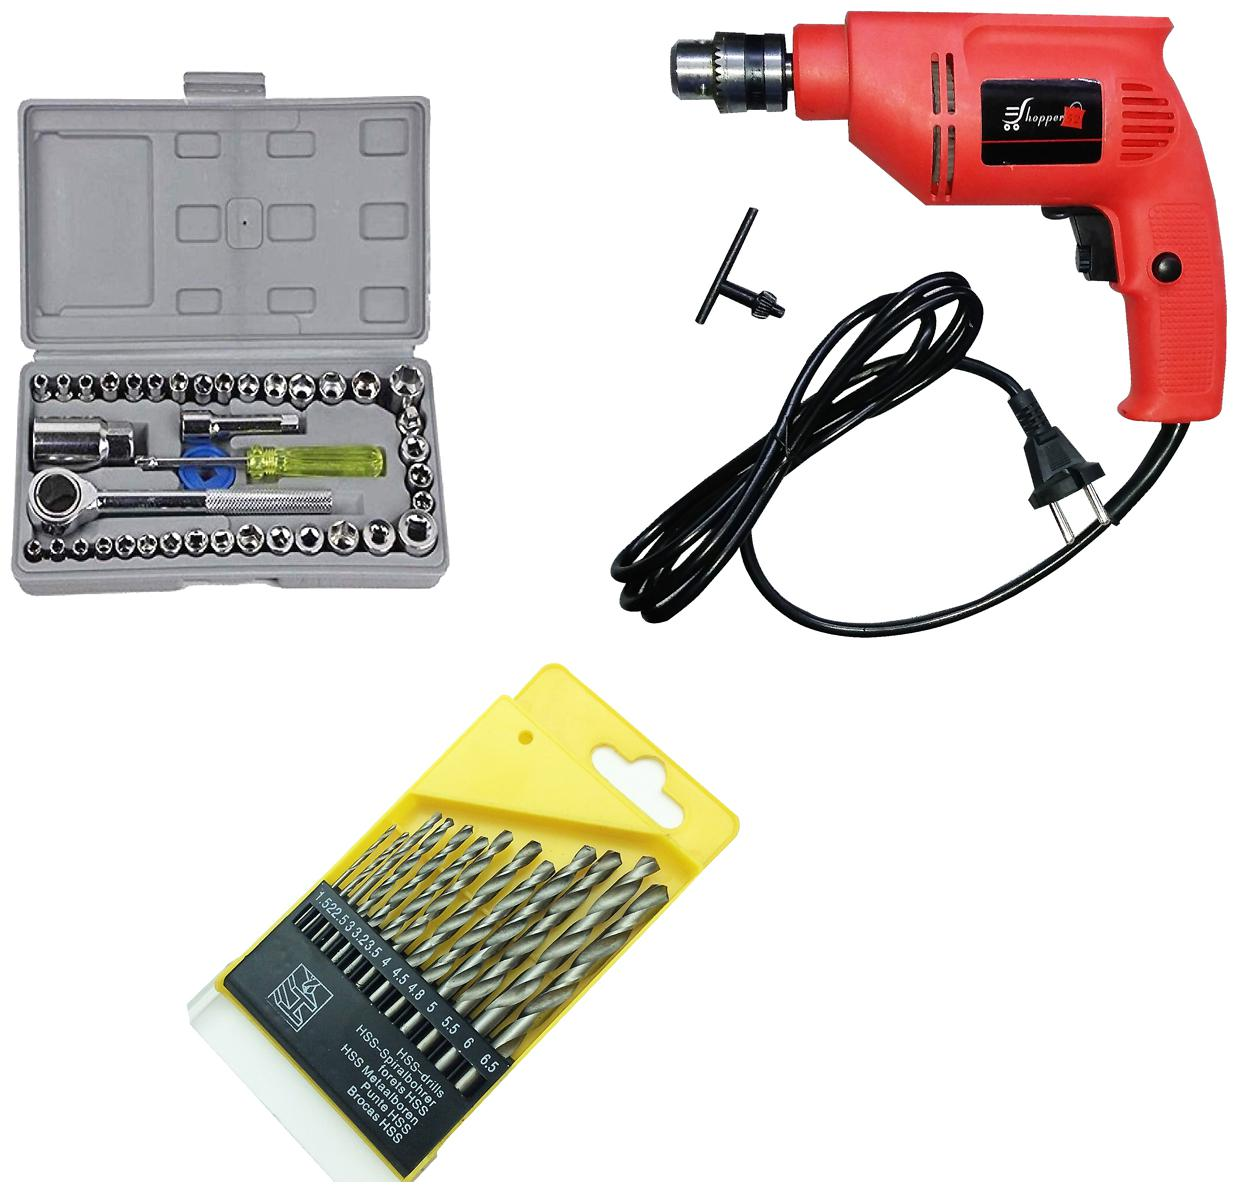 Shopper52 Special Combo Offer! Powerful Drill Machine With 13pcs Drill...